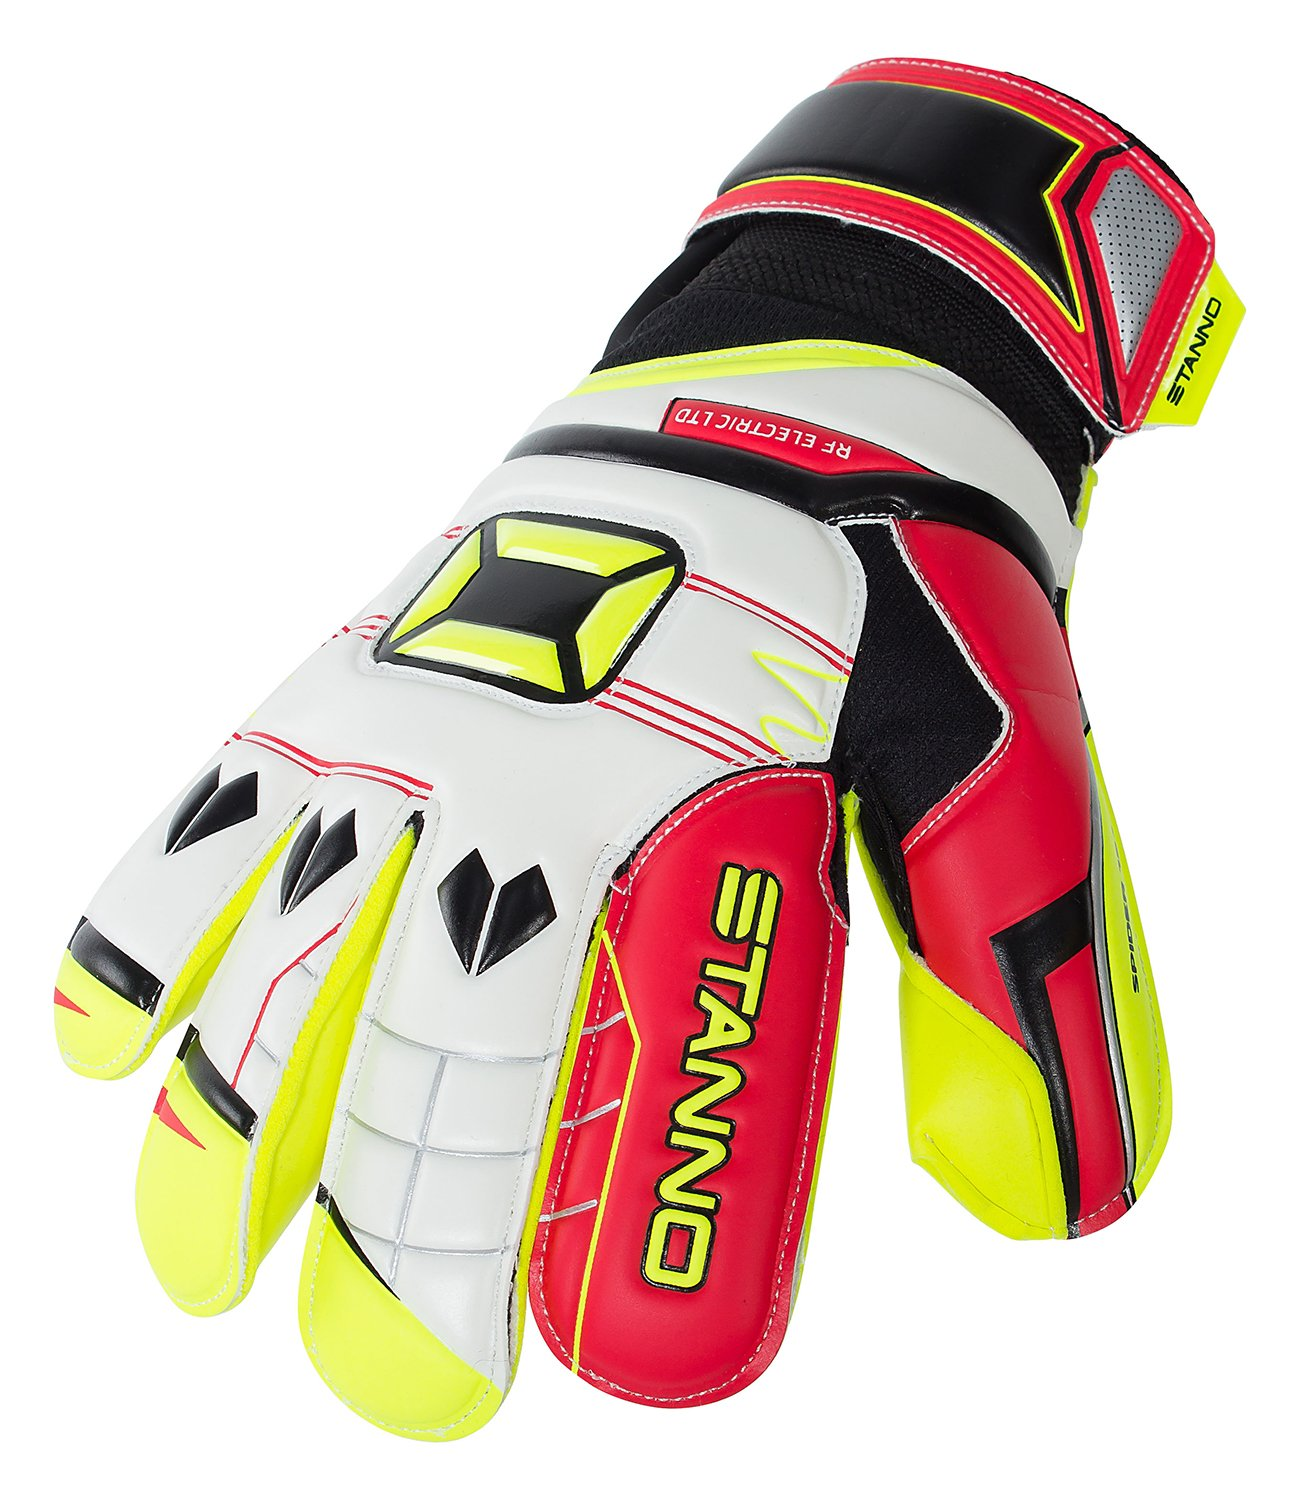 Stanno Electric Limited Junior Goalkeeper Gloves uhlsport eliminator soft supportframe goalkeeper gloves